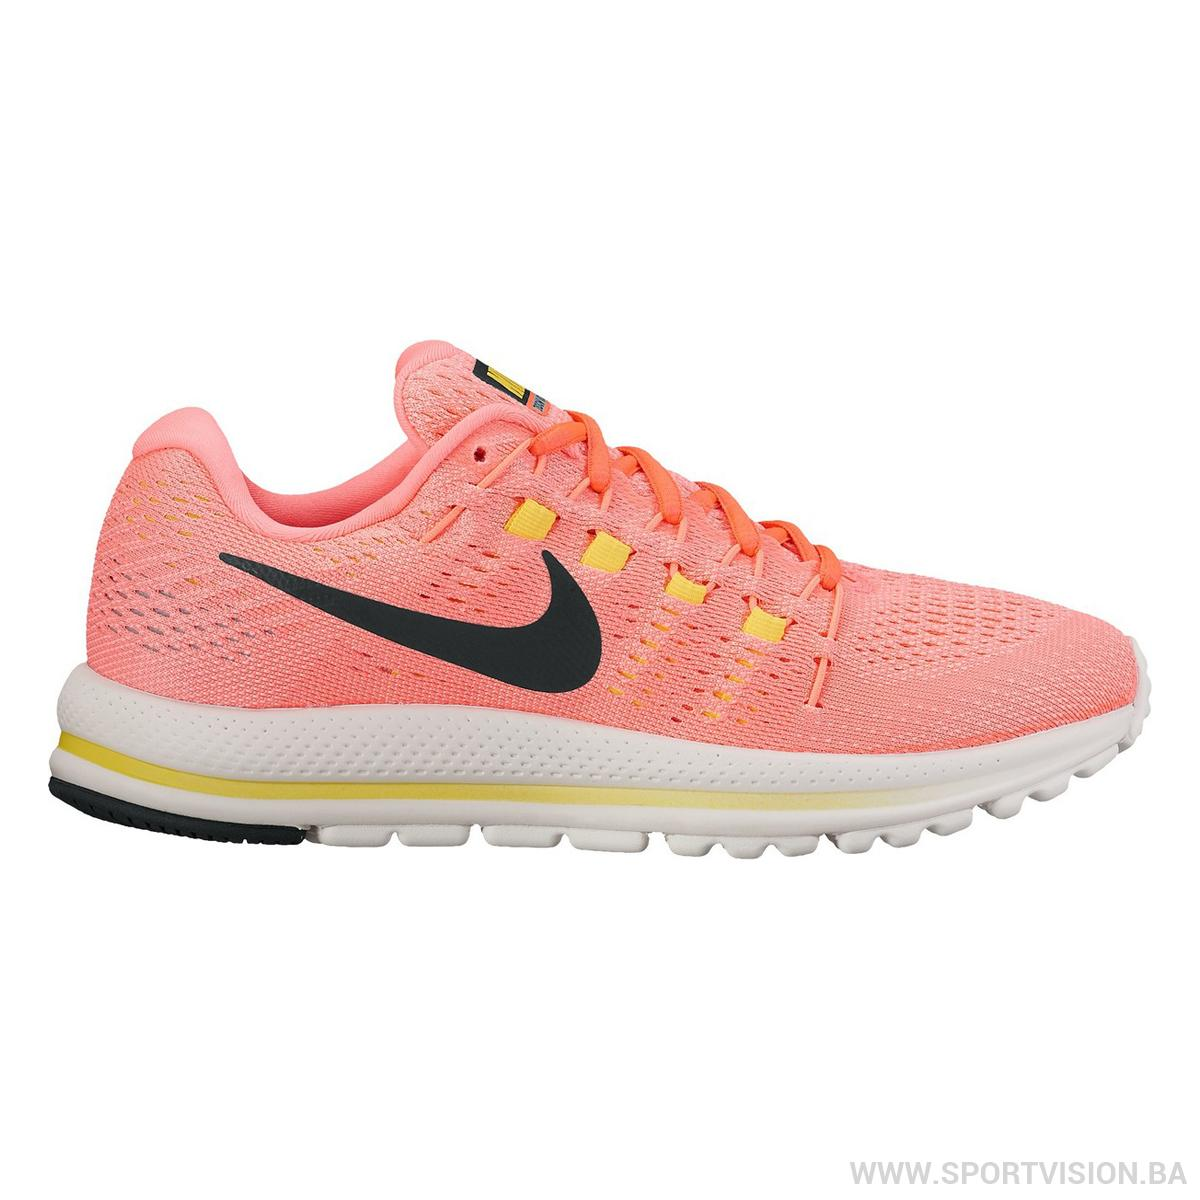 NIKE Patike WOMEN'S NIKE AIR ZOOM VOMERO 12 RUNNING SHOE